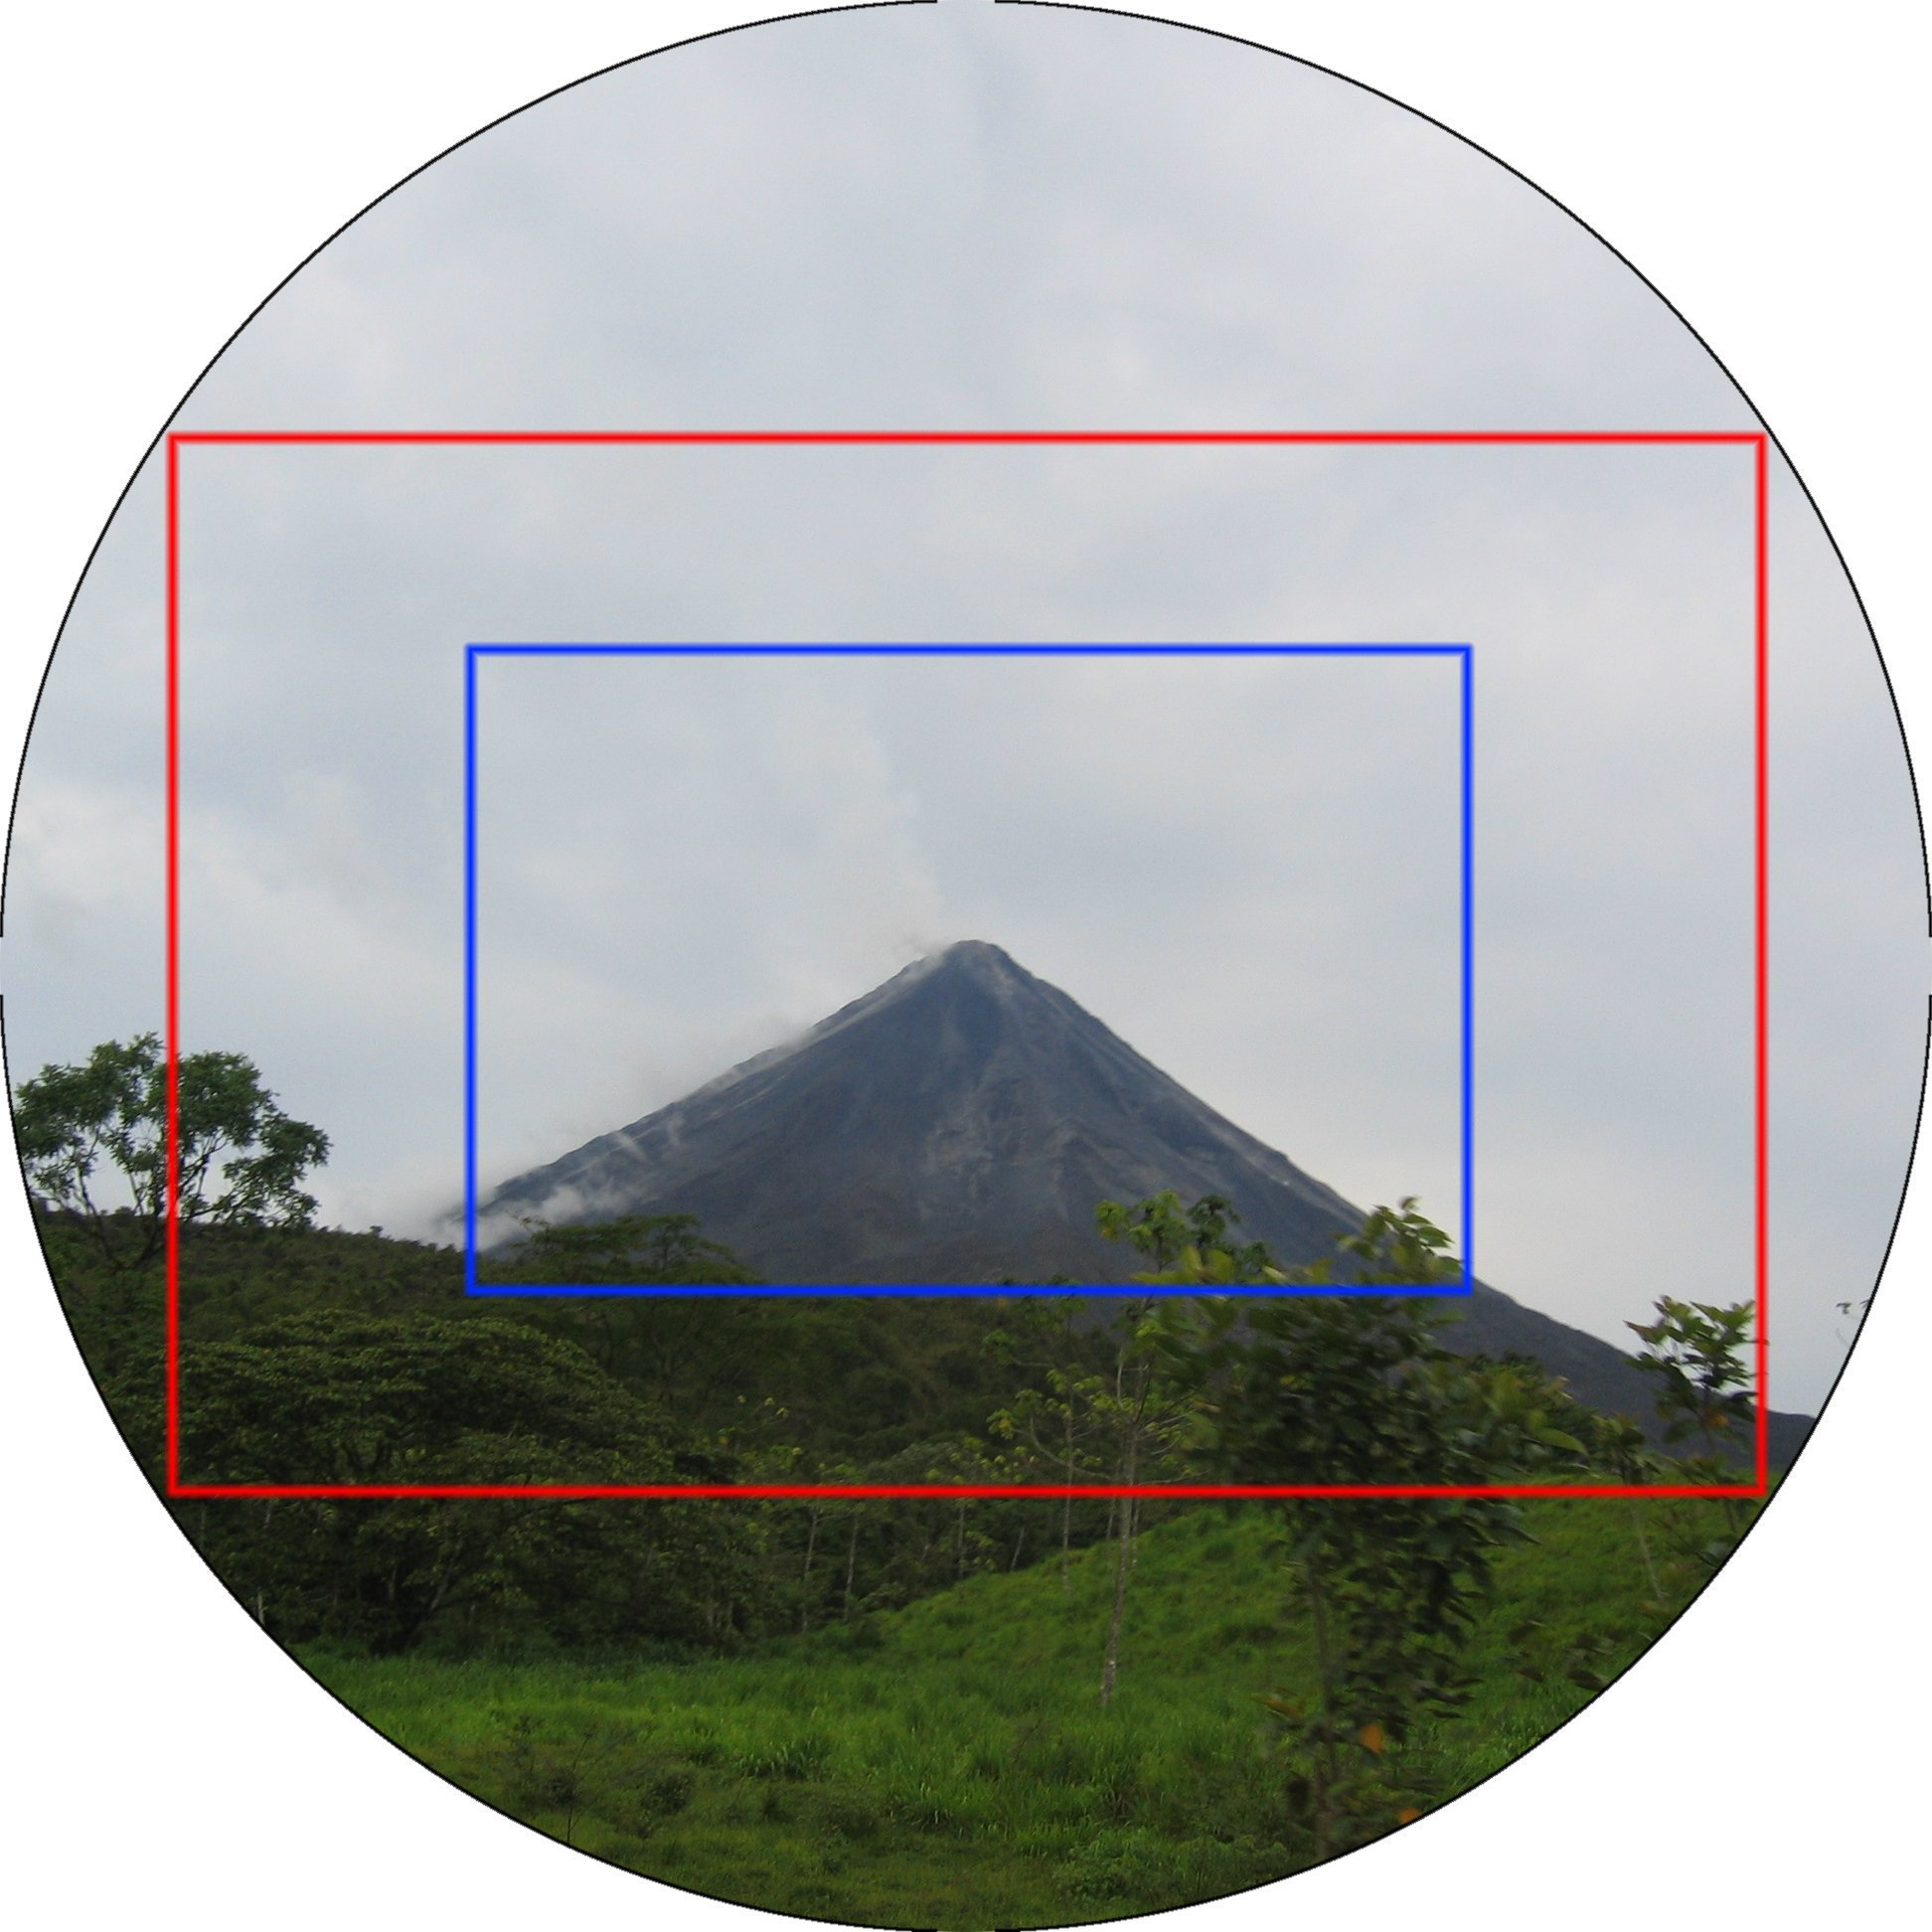 Red is what a full frame camera would capture and blue is what a APS-C crop camera would capture.  https://en.wikipedia.org/wiki/Crop_factor#/media/File:Crop_Factor.JPG